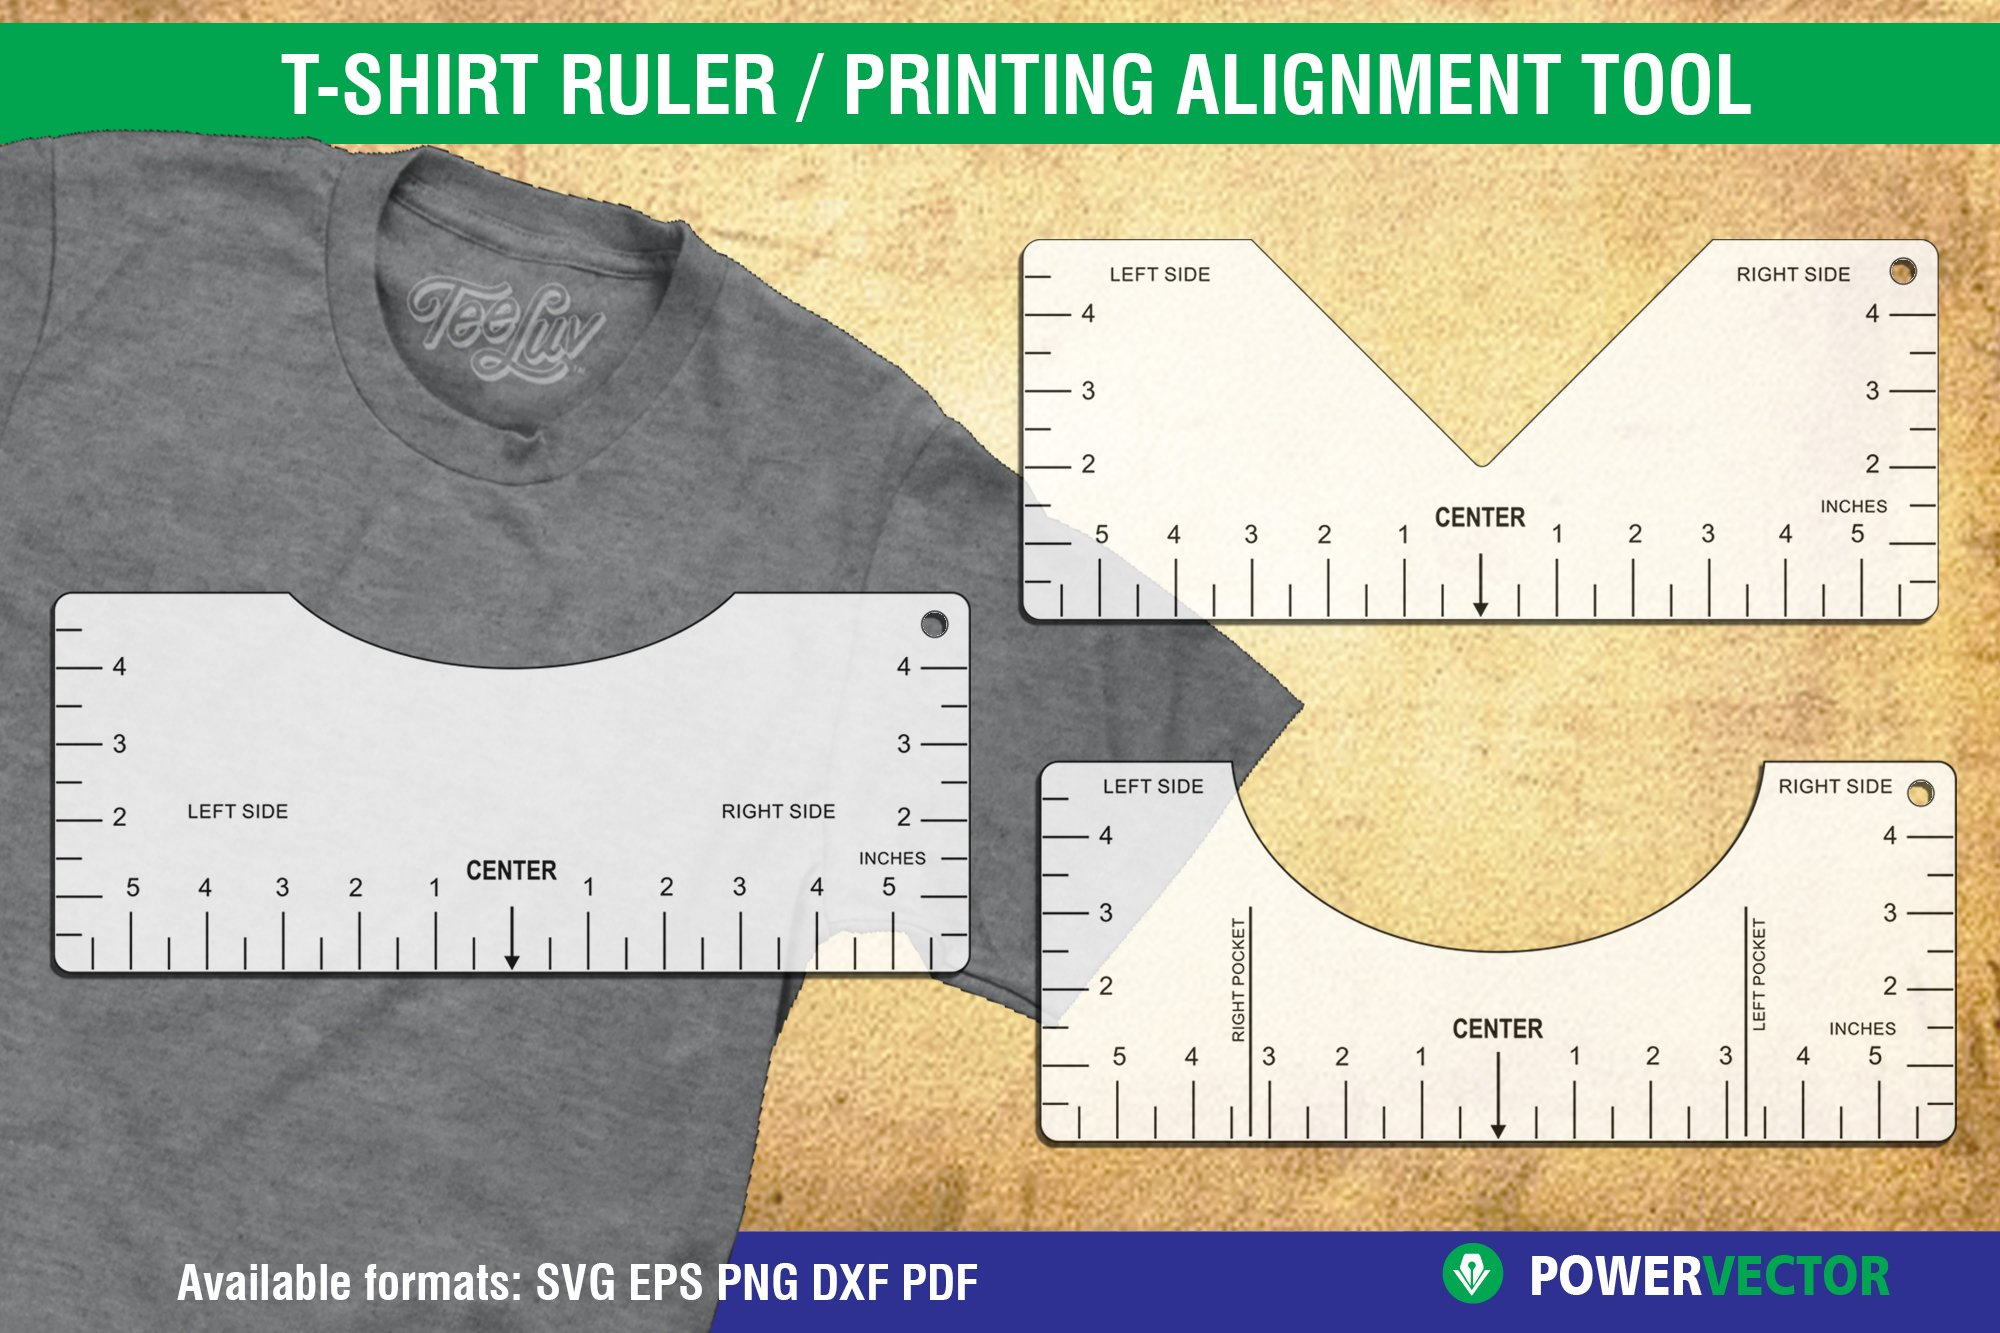 T Shirt Alignment Tool Glowforge Svg File Printable Ruler 1123691 Laser Engraving Design Bundles